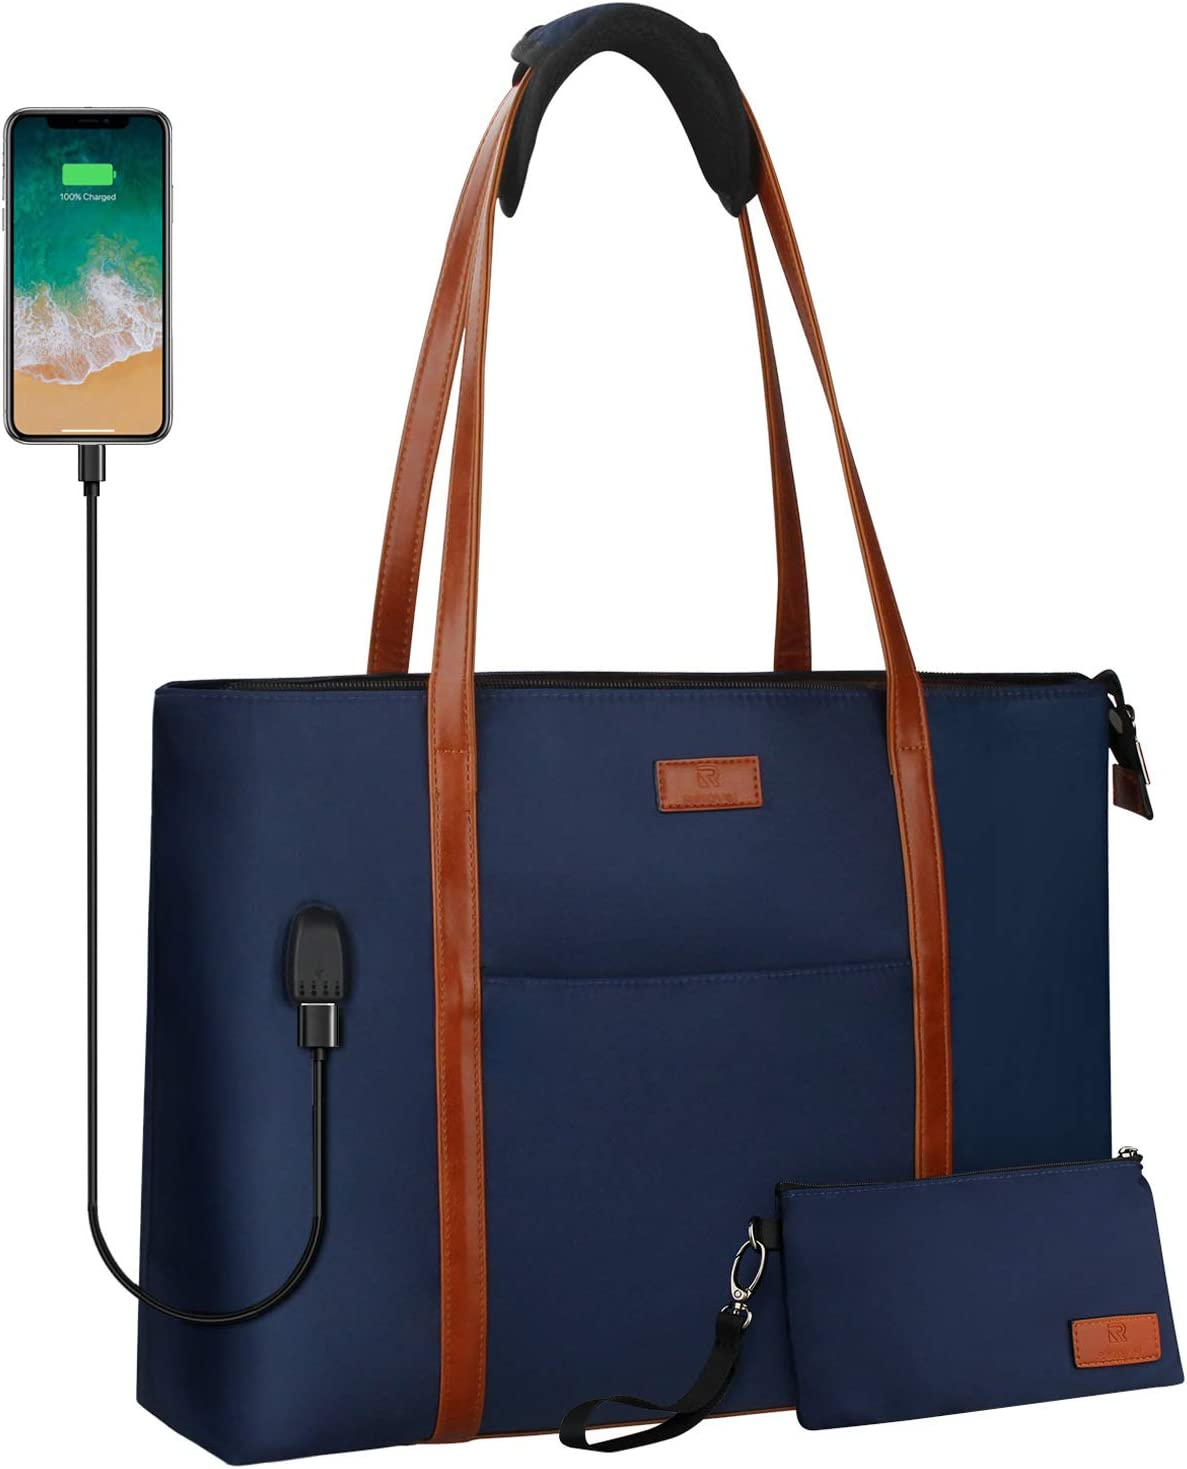 Laptop Tote Bag for Women Teacher Work Office USB Bags Fits 15.6 inches Laptop (Navy Blue)